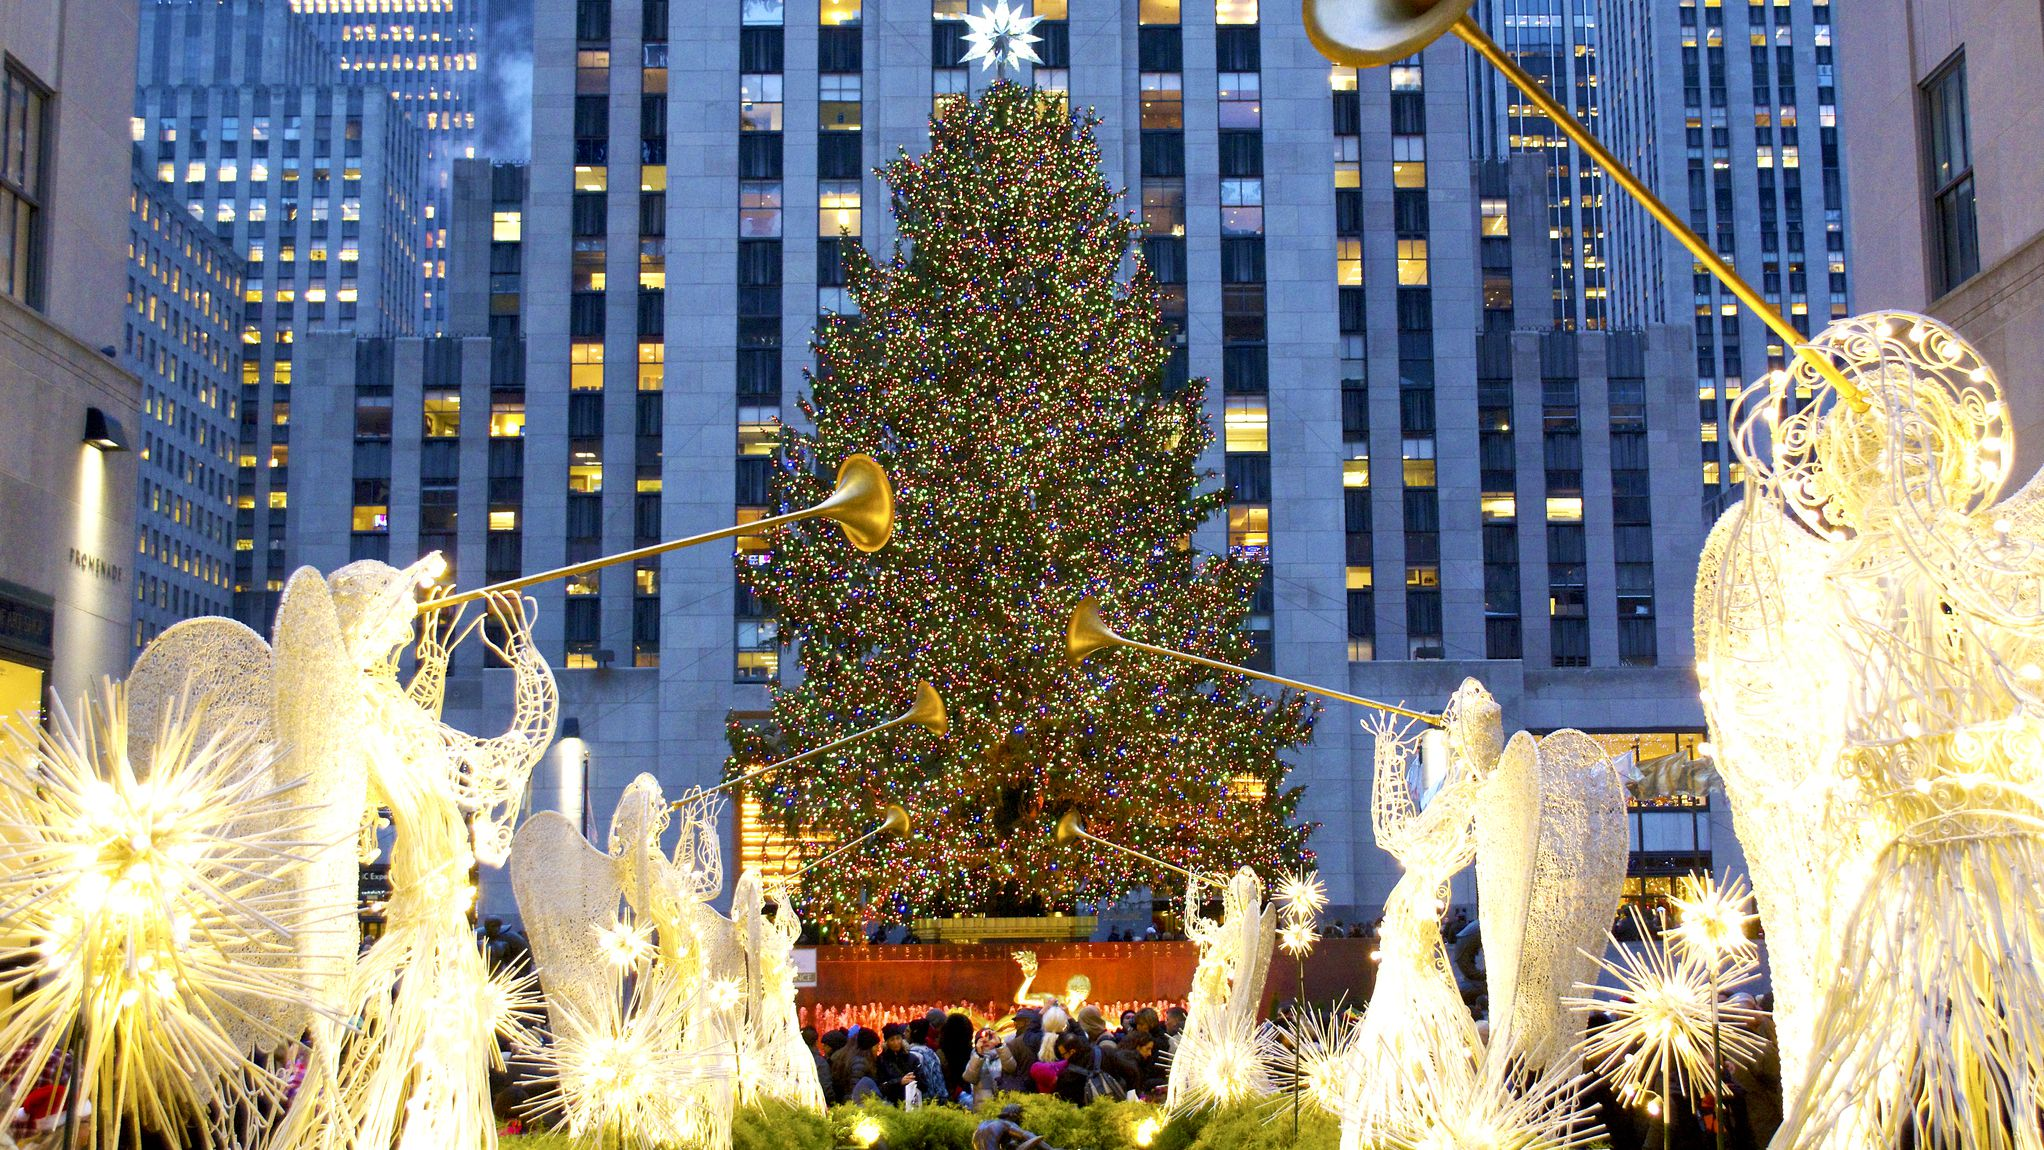 Nyc Christmas Tree 2020 Queens Guide to Christmas in New York City: Events, Parades, and Lights